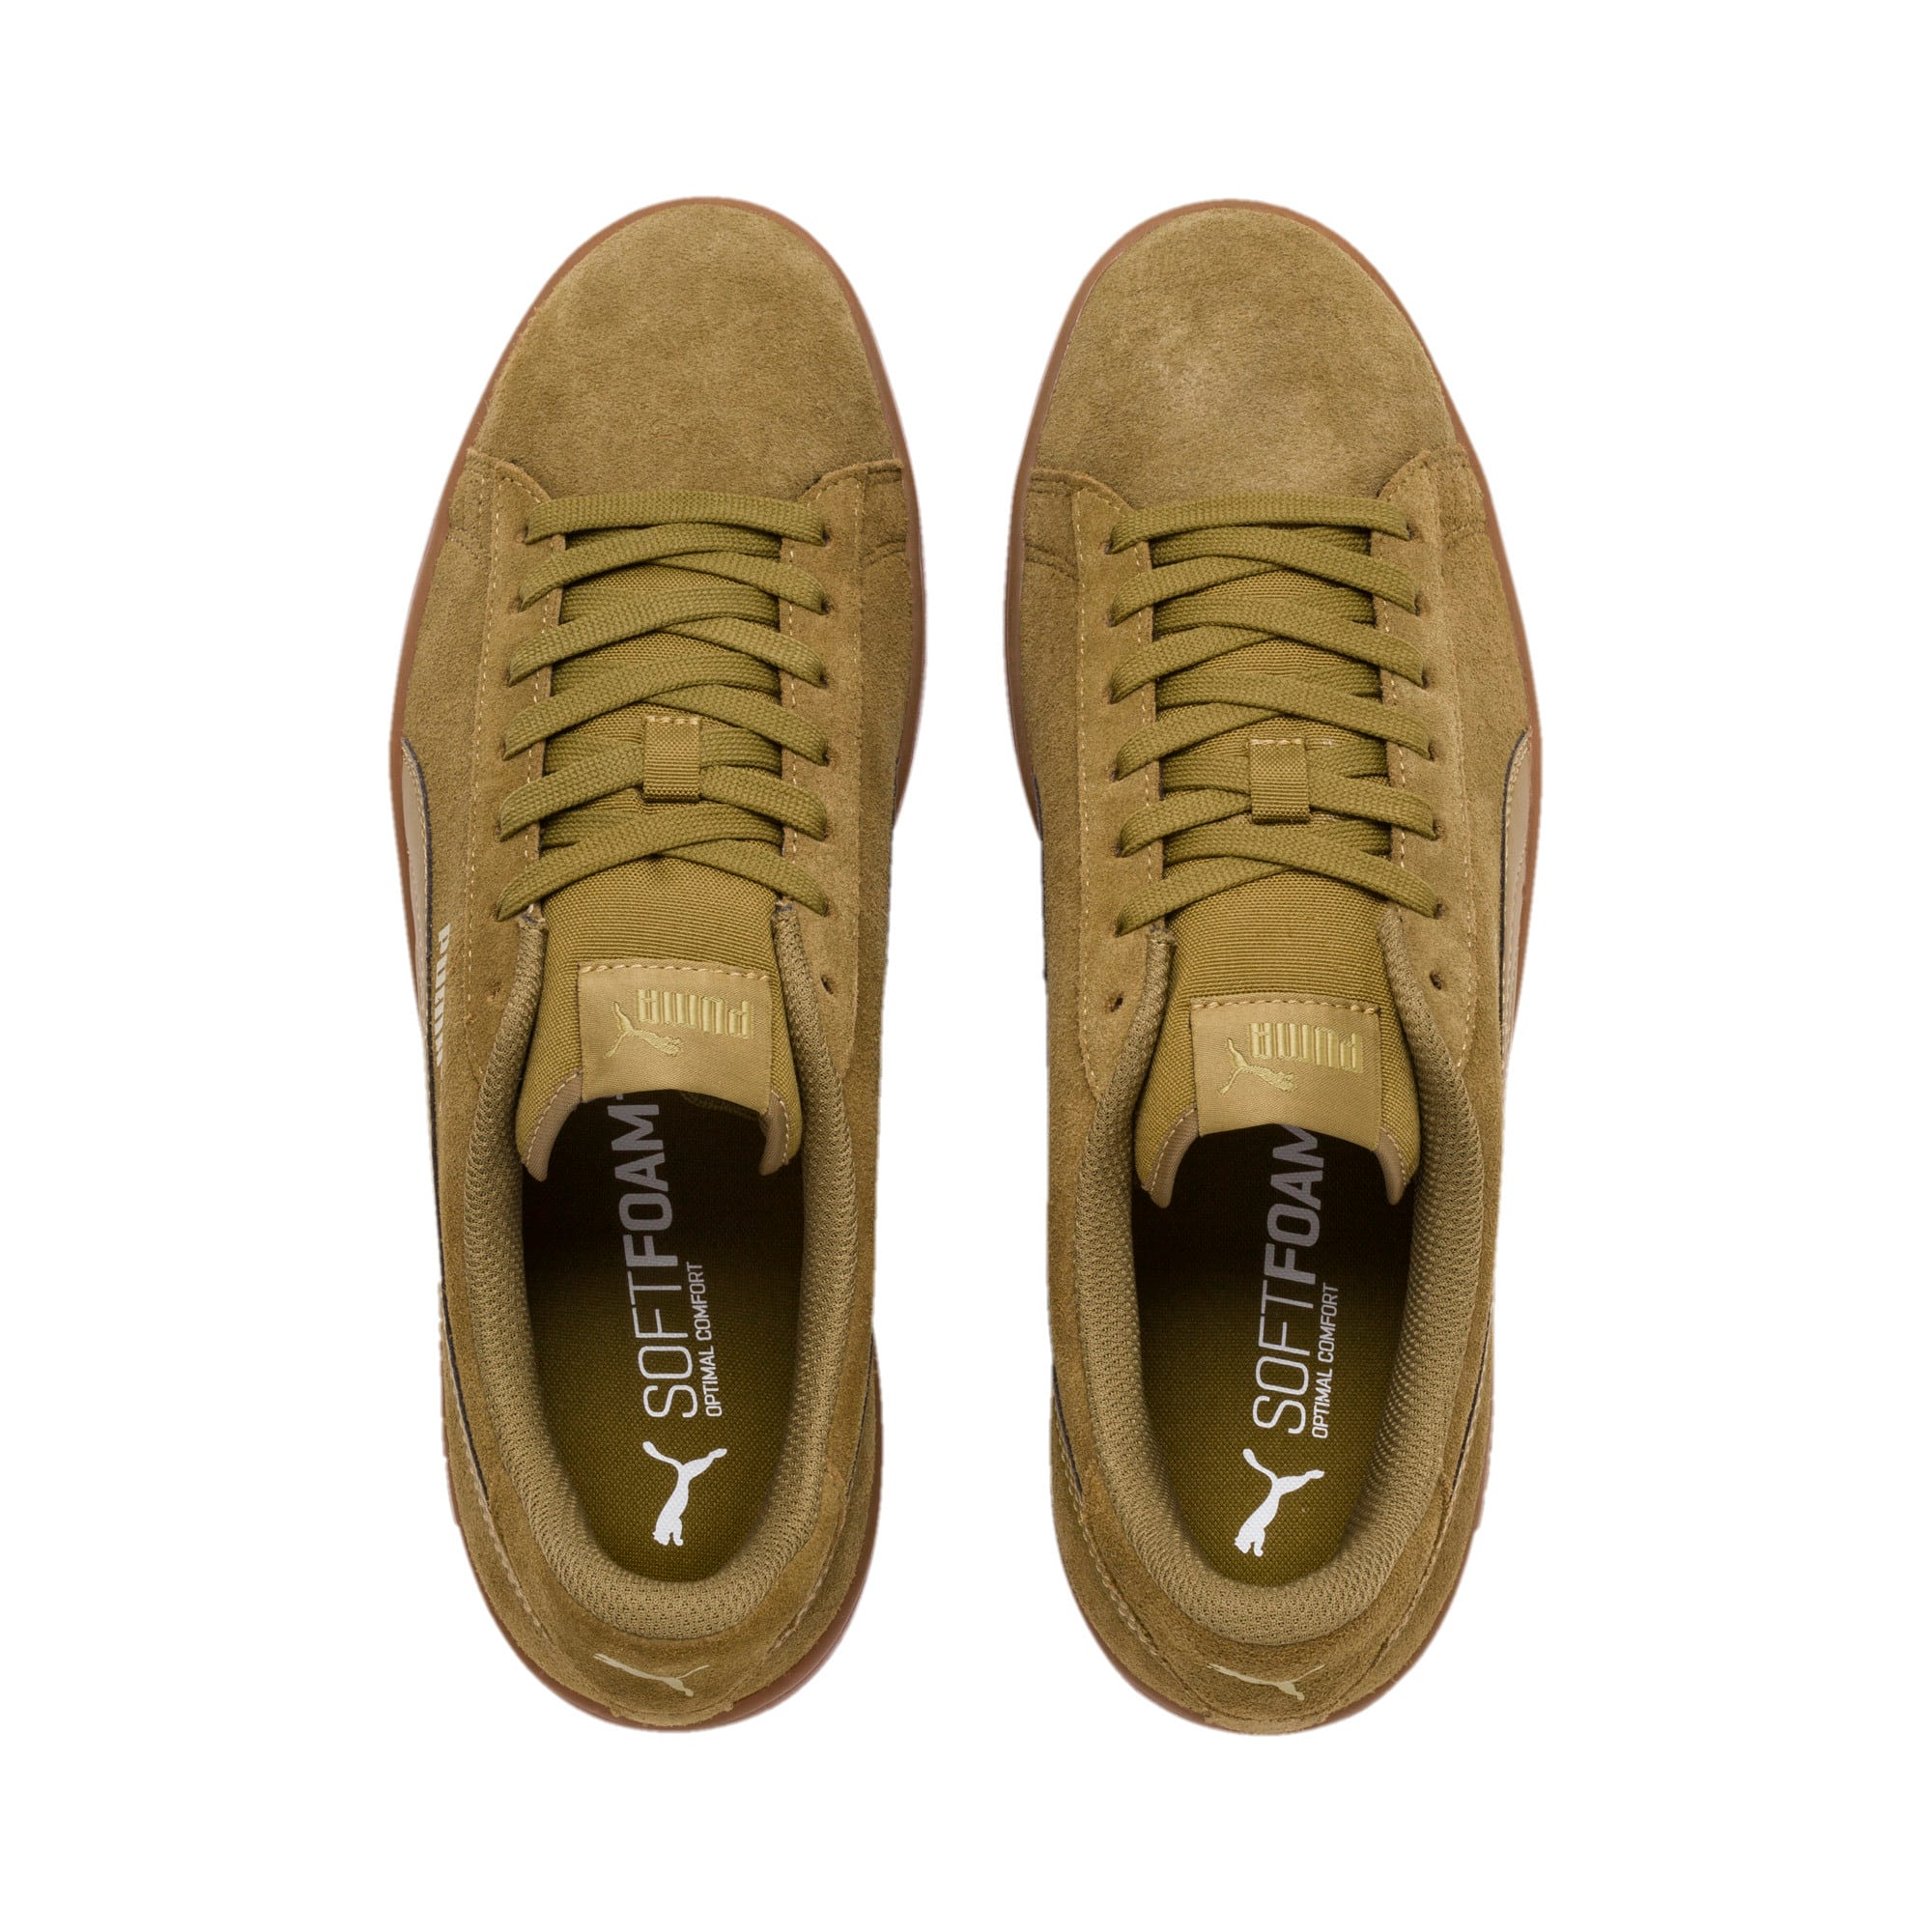 Thumbnail 7 of PUMA Smash v2 Sneakers, Moss Green-Team Gold-Gum, medium